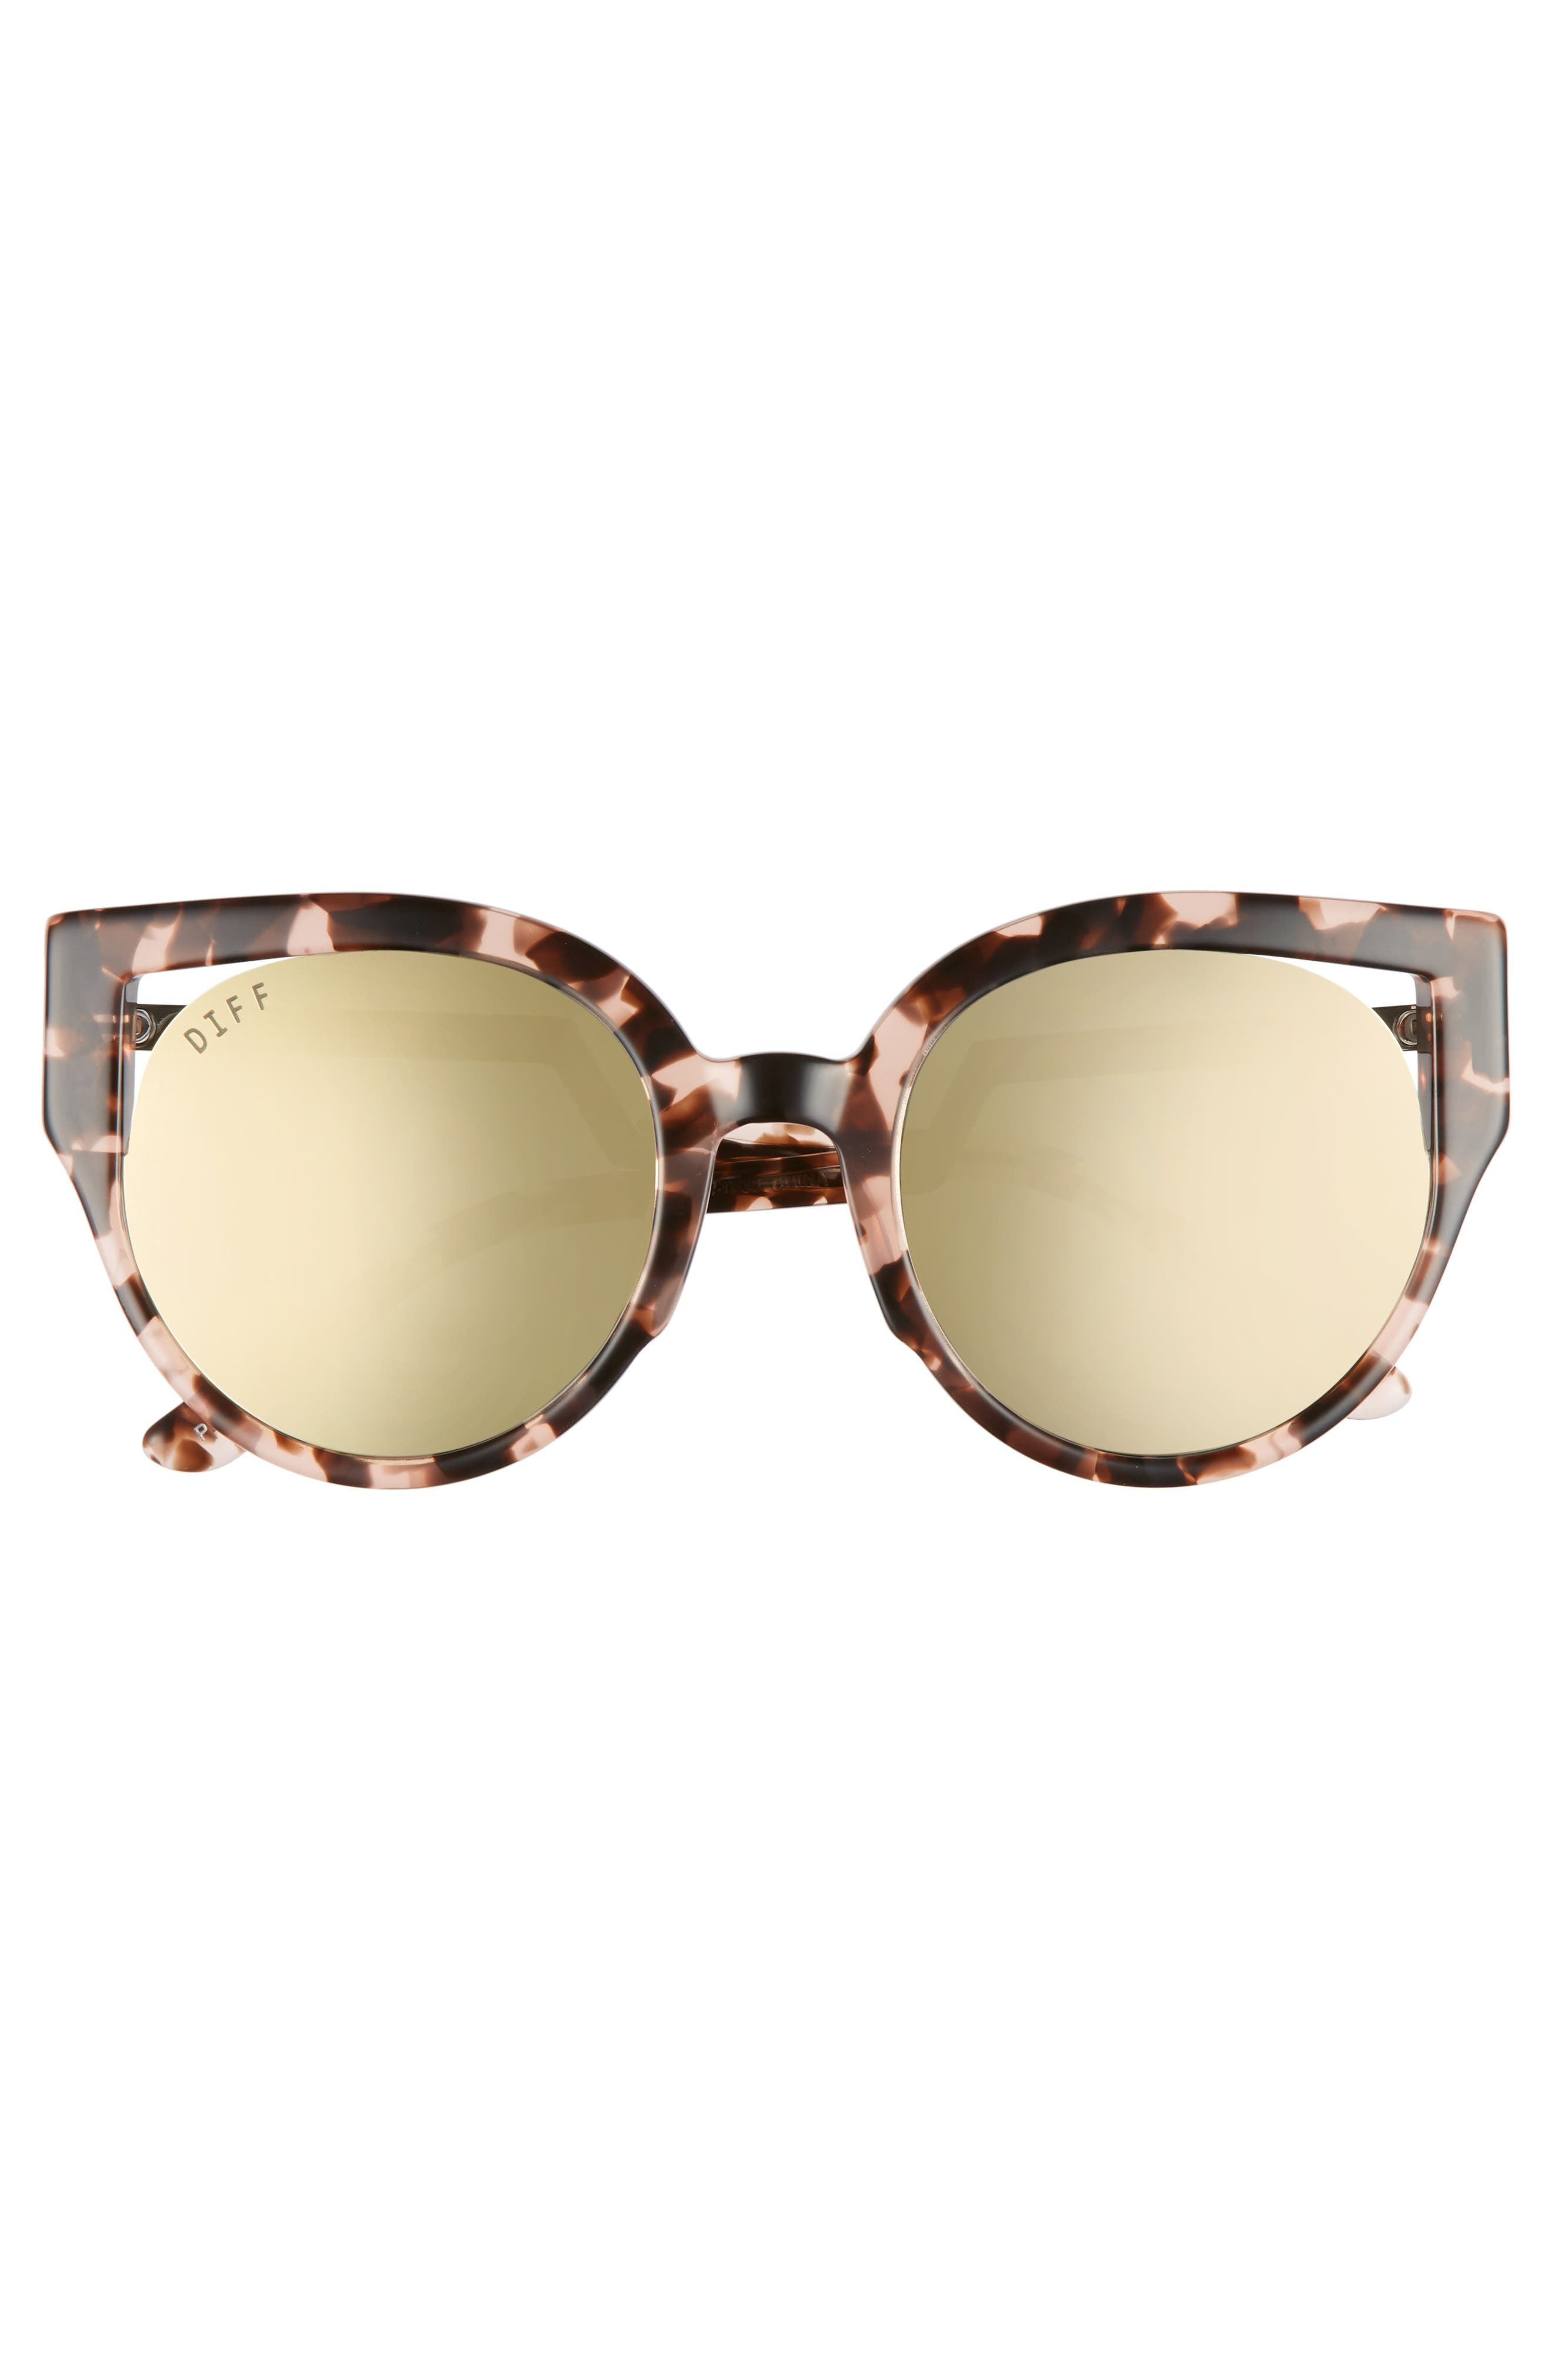 Penny 55mm Cat Eye Sunglasses,                             Alternate thumbnail 3, color,                             Himalayan Tortoise/ Taupe